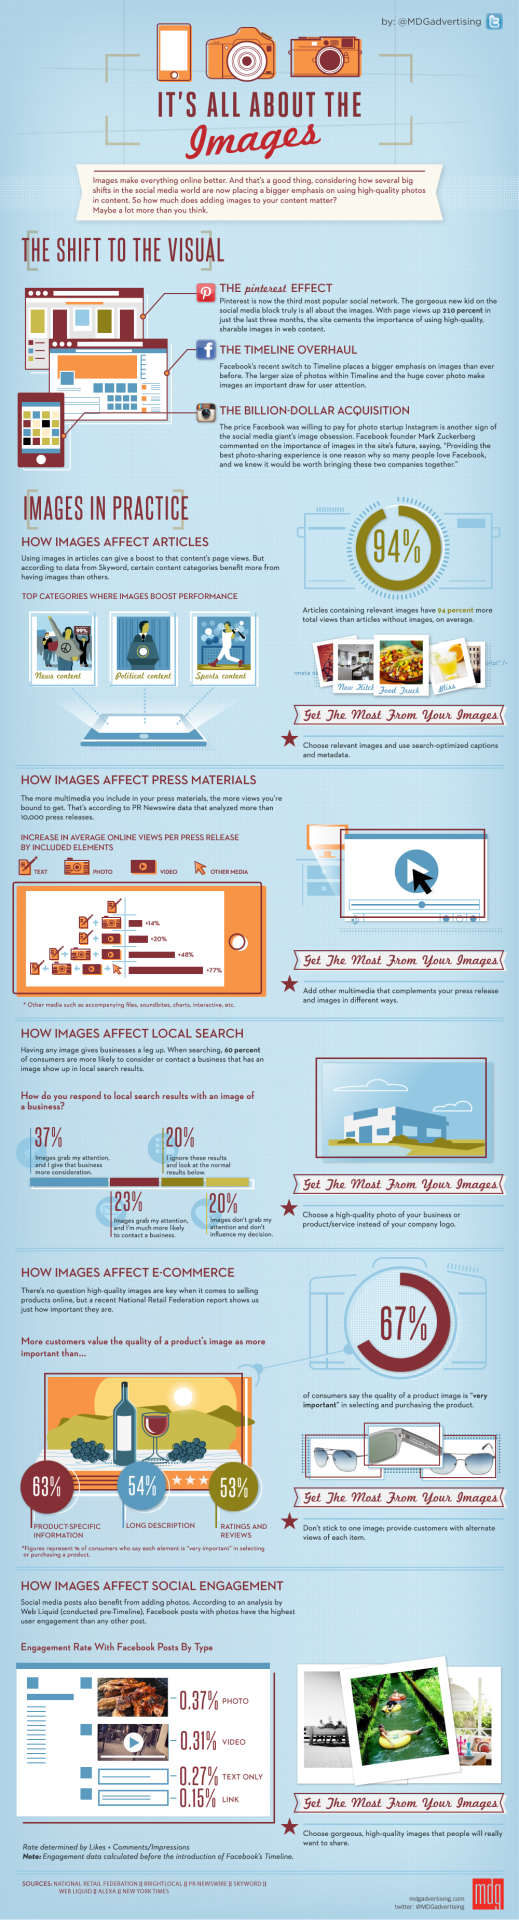 6 Powerful Reasons Why you Should include Images in your Marketing - Infographic   Written by Jeff Bullas - 129 Comments Categories: Instagram, Marketing, Social Media, Social Media Marketing, Visual Web,  jeffbullas.com    We live in the increasingly visual age and web where there is camera in nearly everyone's pocket and with more than 2.5 billion camera phones in use we are entering a new dynamic era around …